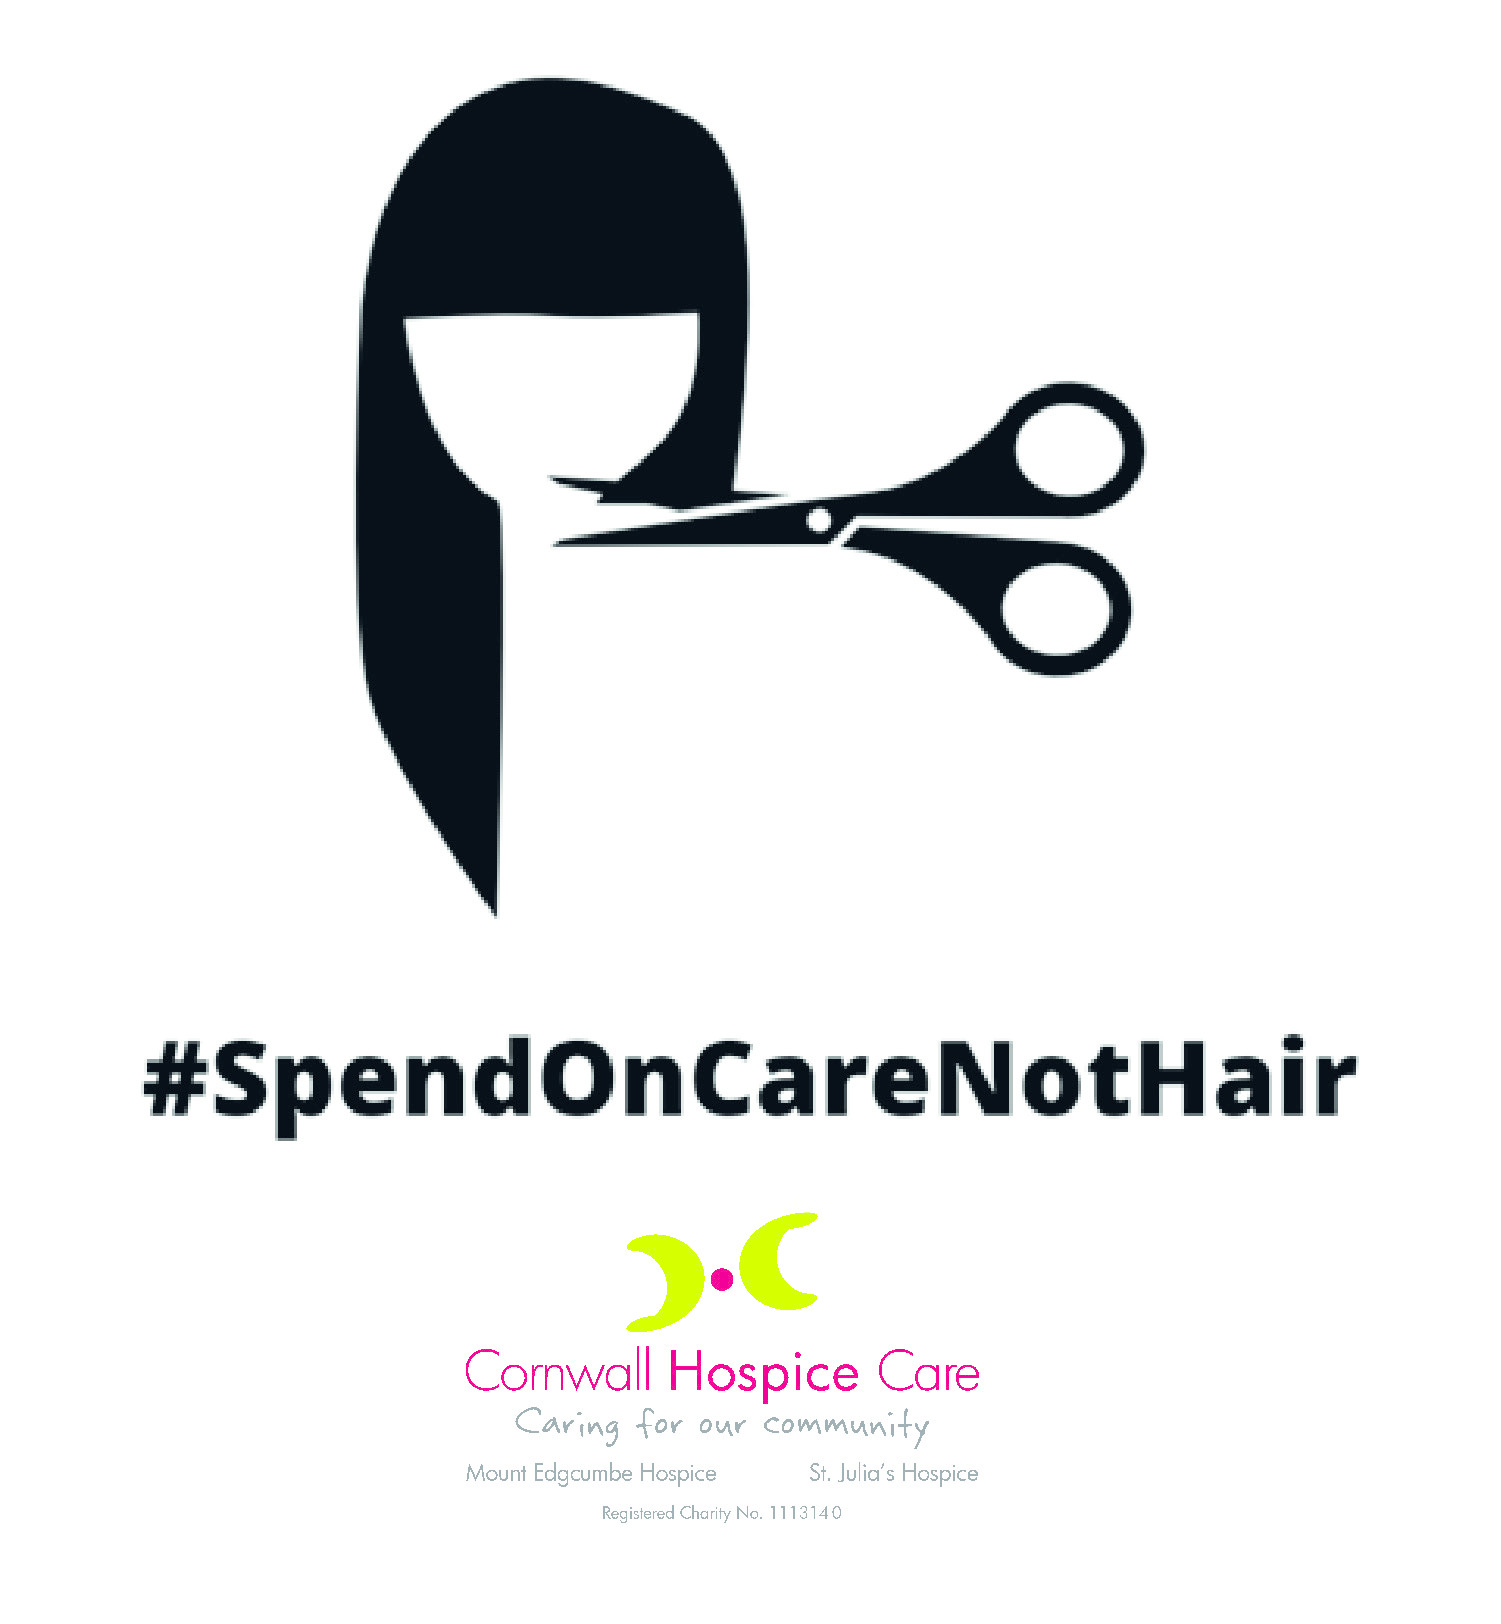 Charity launches 'care not hair' campaign to raise much-needed funds